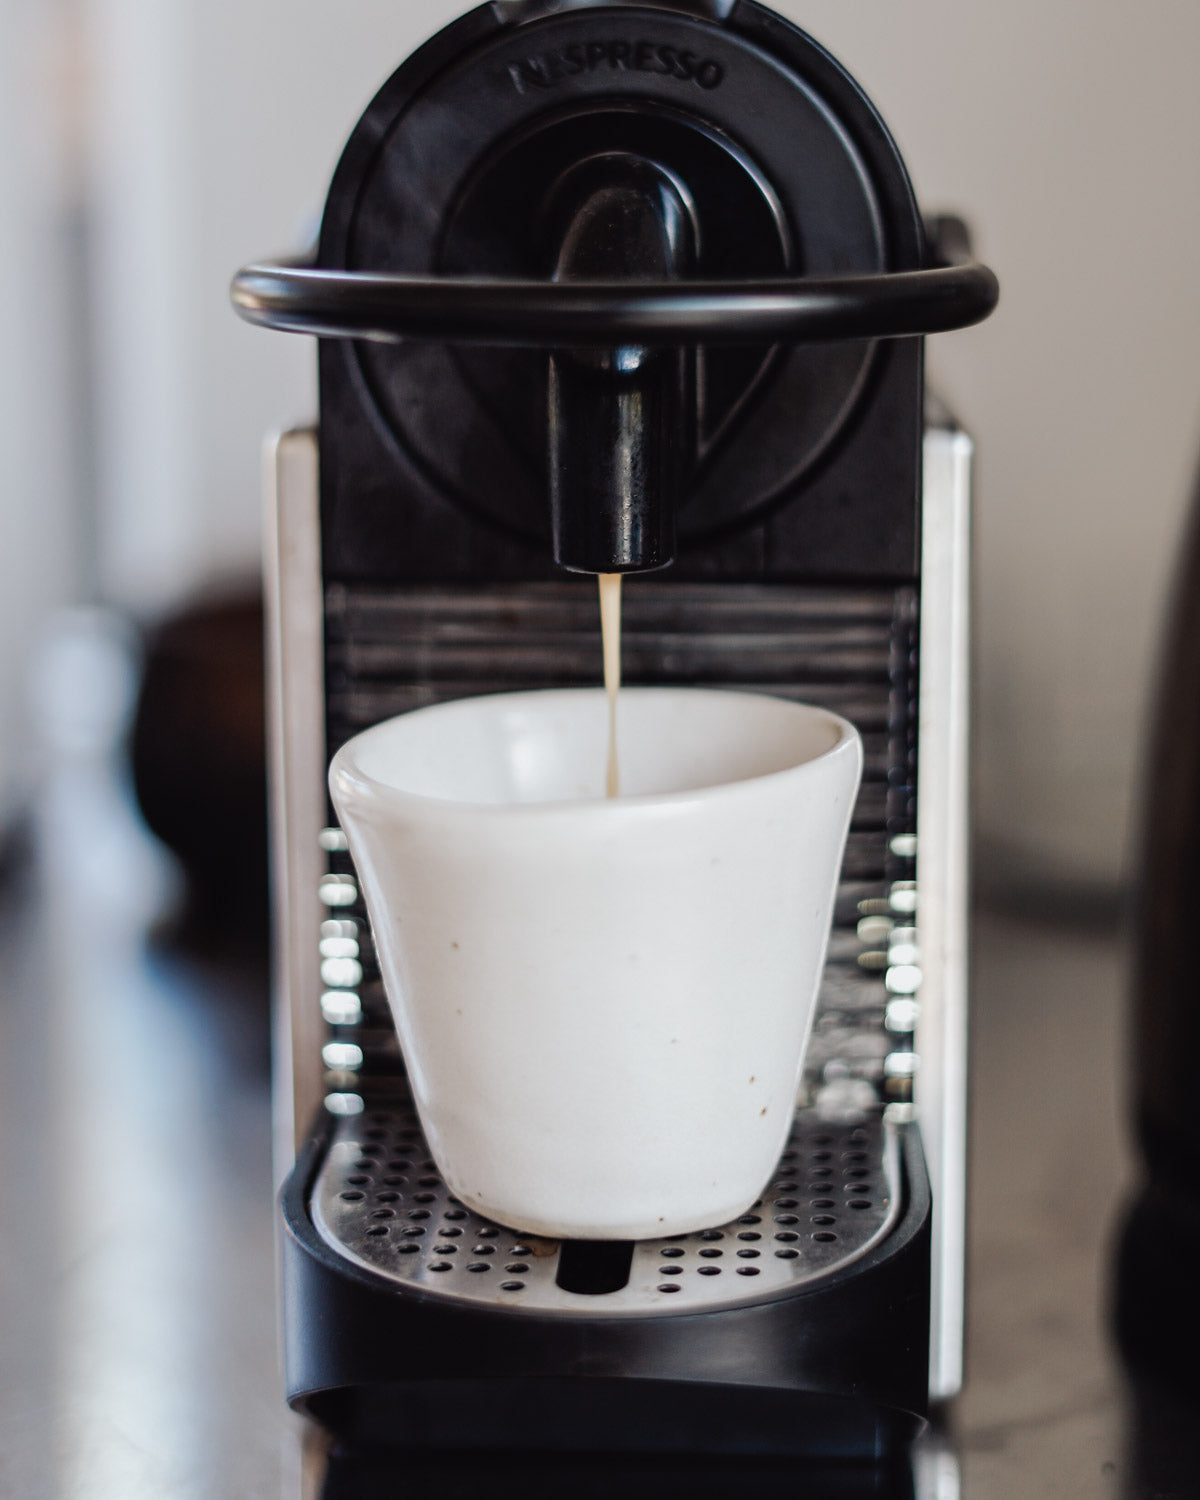 Handmade tumbler being filled with coffee in an espresso machine